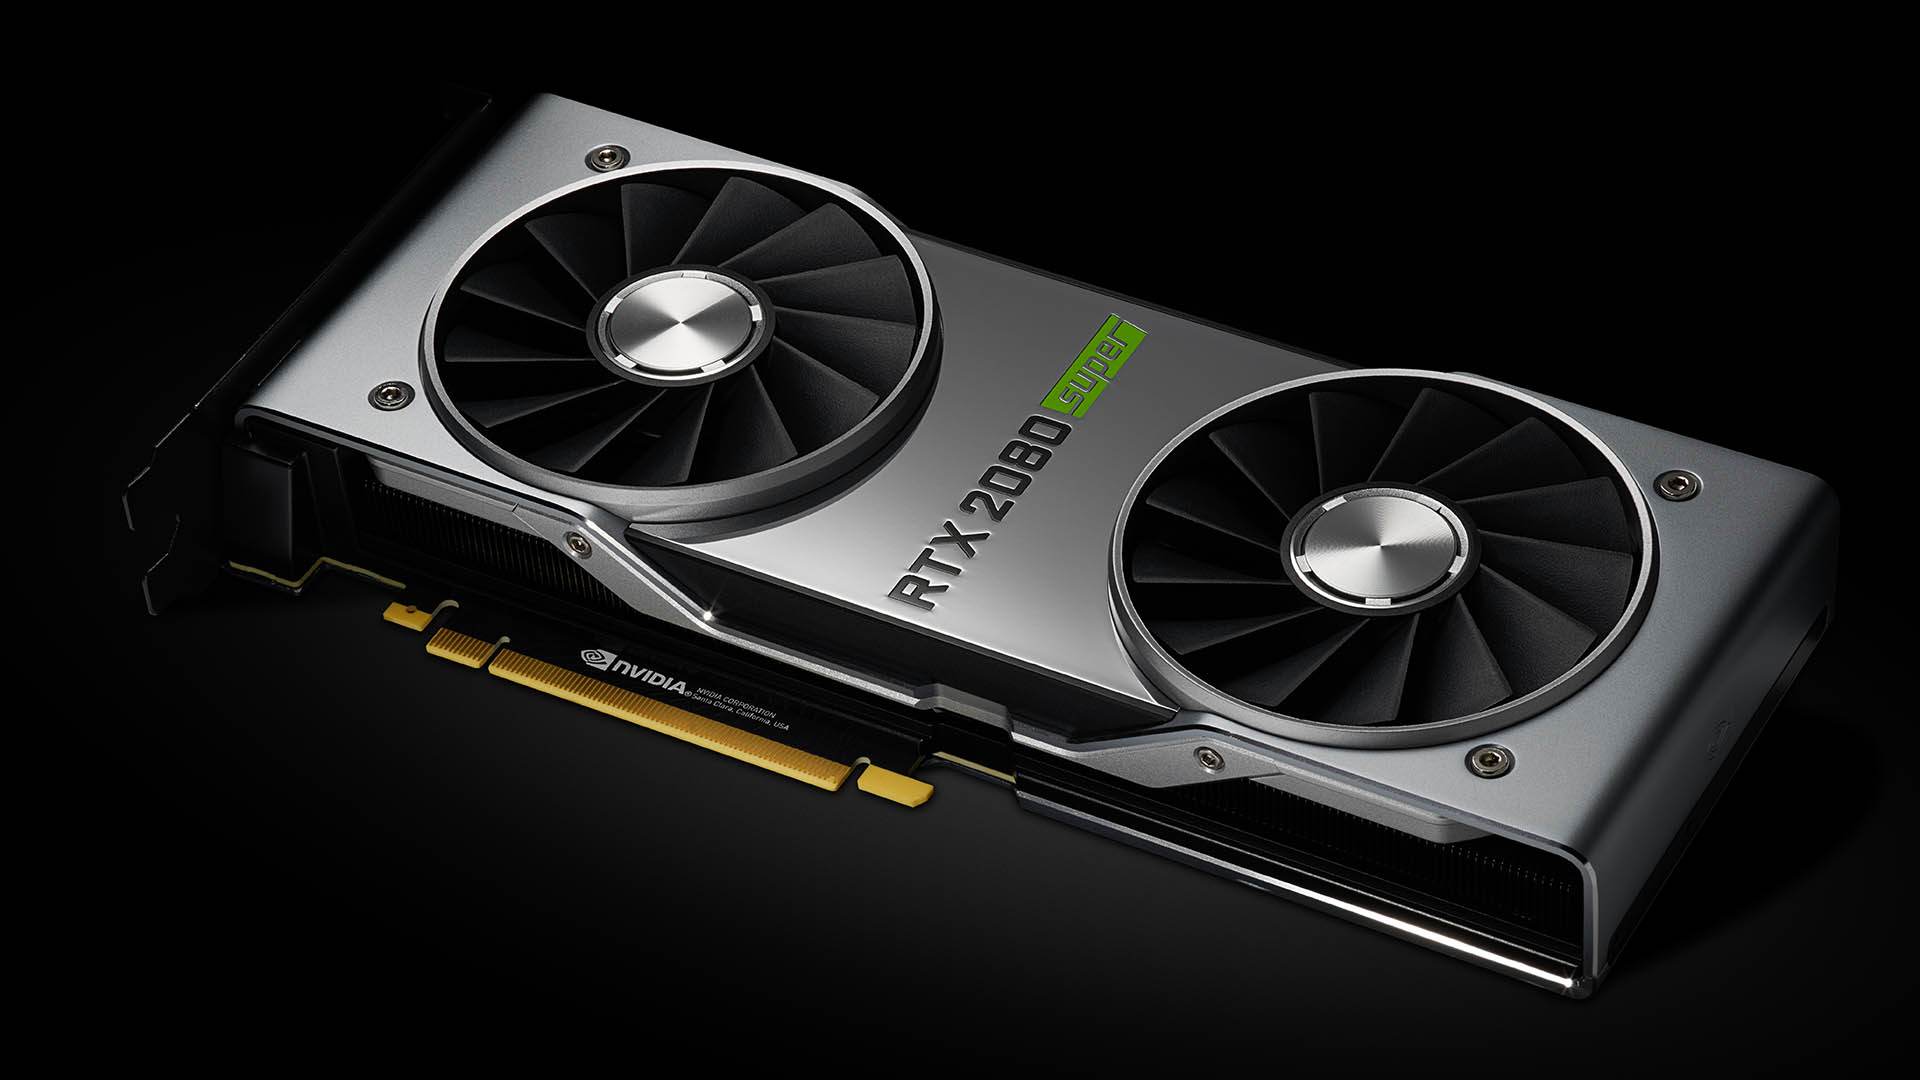 An image of the RTX 3080 Super graphics card on a black background